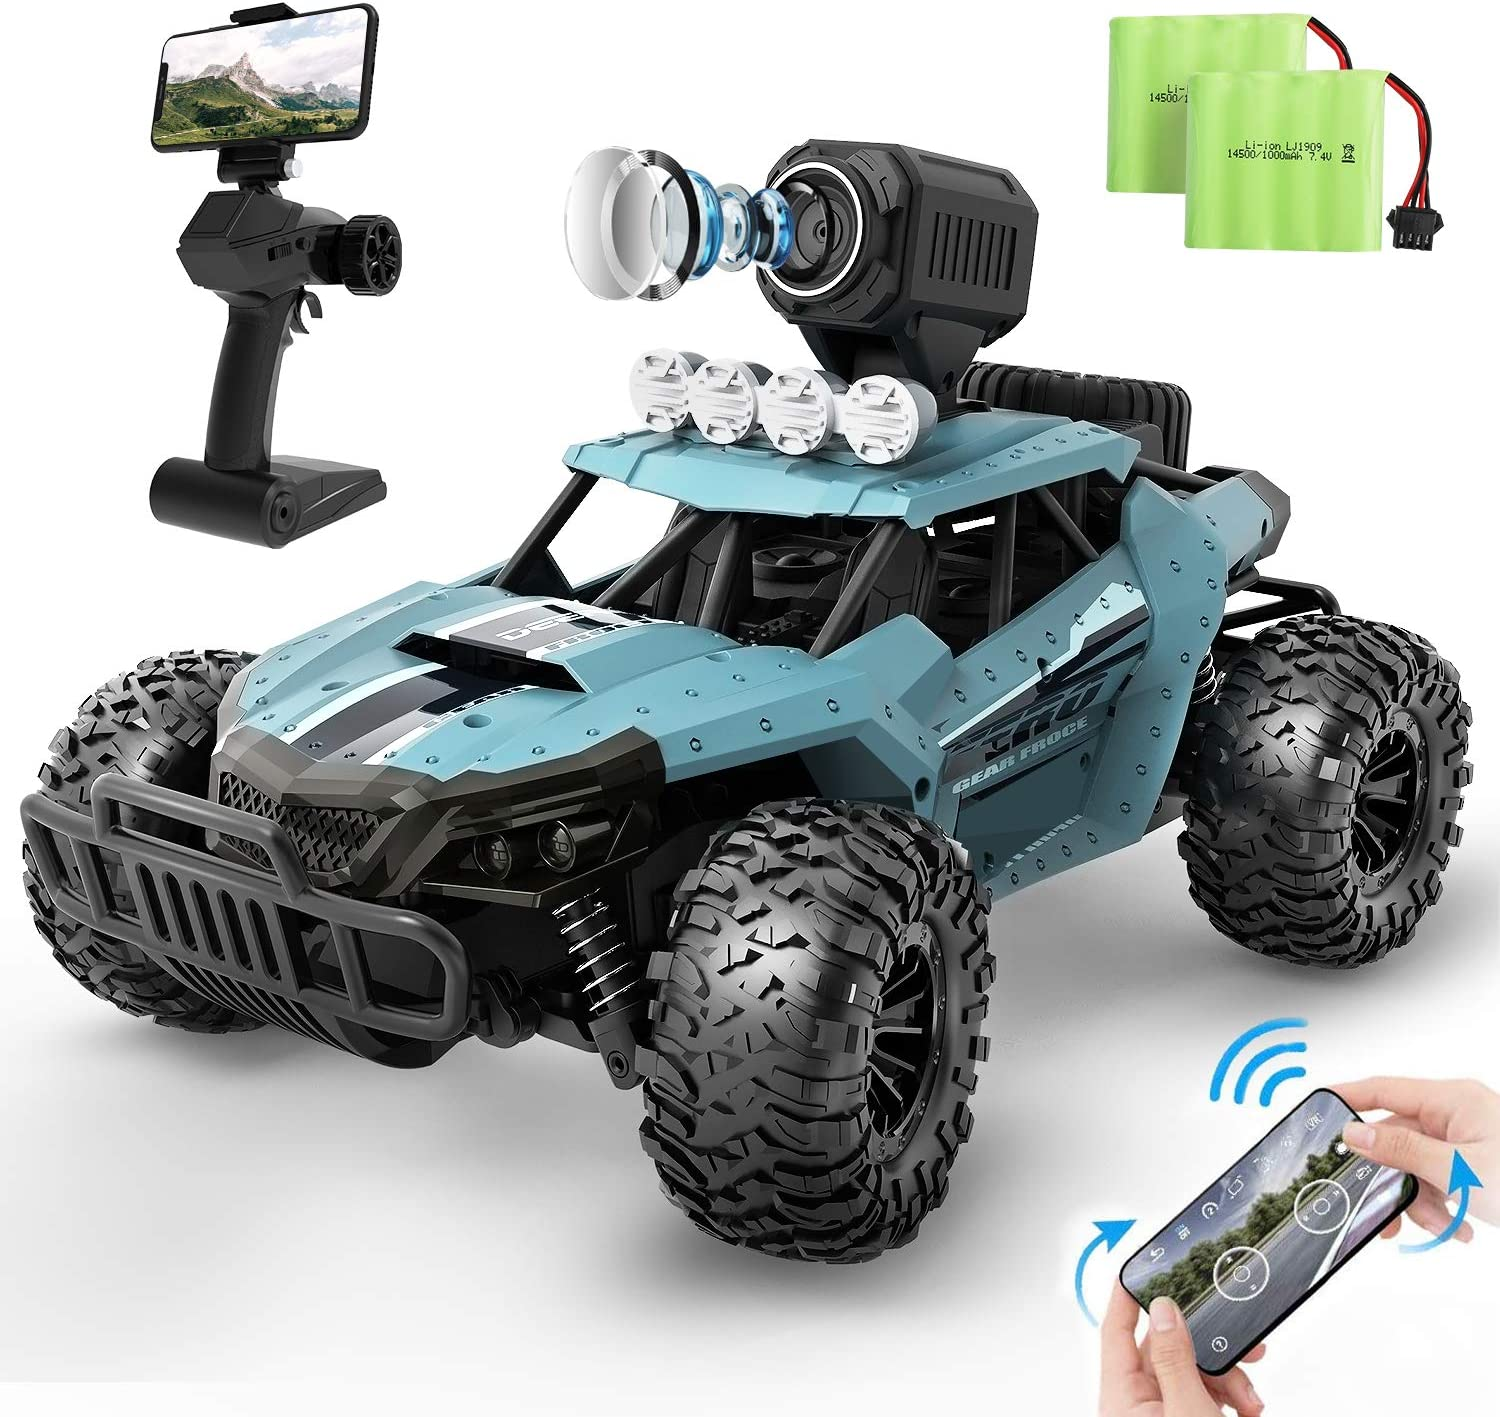 DEERC RC Cars DE36W Remote Control Car with 720P HD FPV Camera, 1/16 Scale  Off-Road Remote Control Truck, High Speed Monster Trucks for Kids Adults,  30 Min Play, RC Toys Gift for